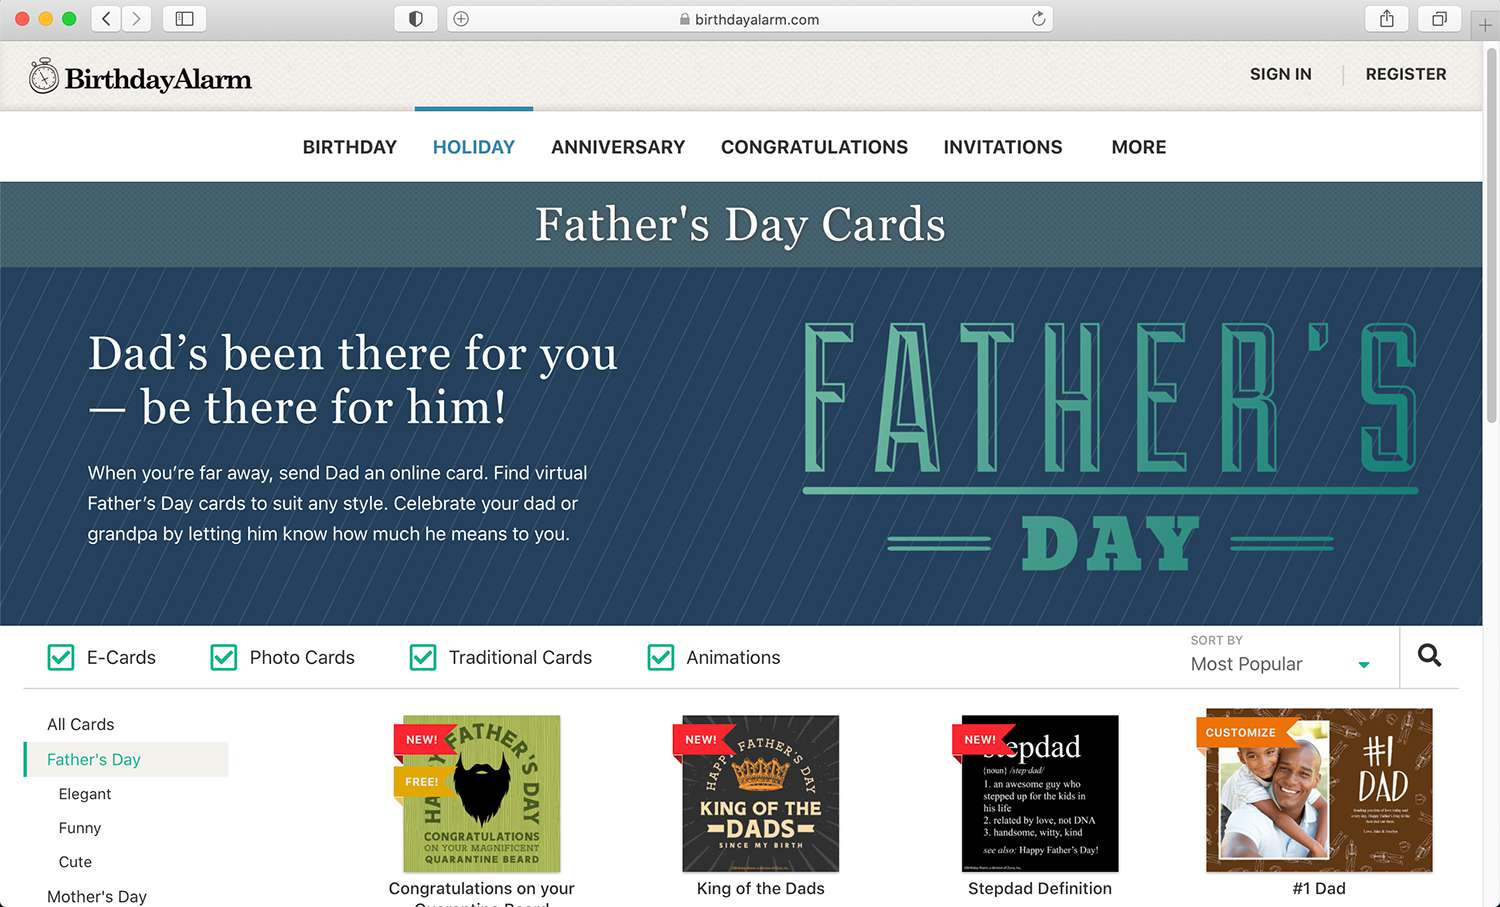 BirthdayAlarm e-card site for Father's Day and other special holidays